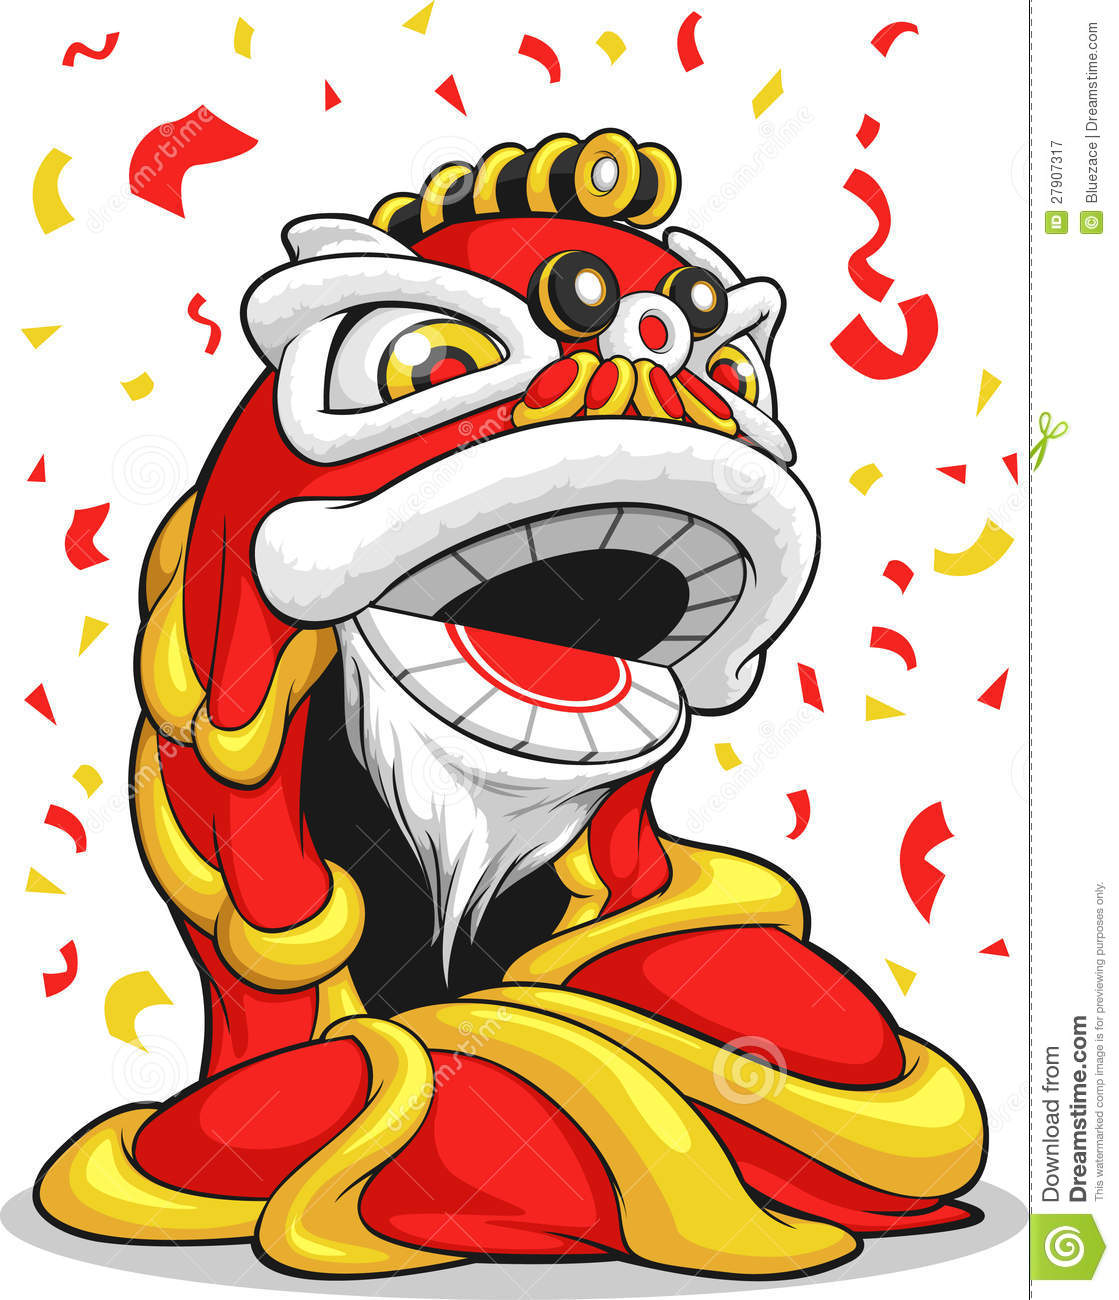 Chinese New Year Lion Royalty Free Stock Photography Image 27907317